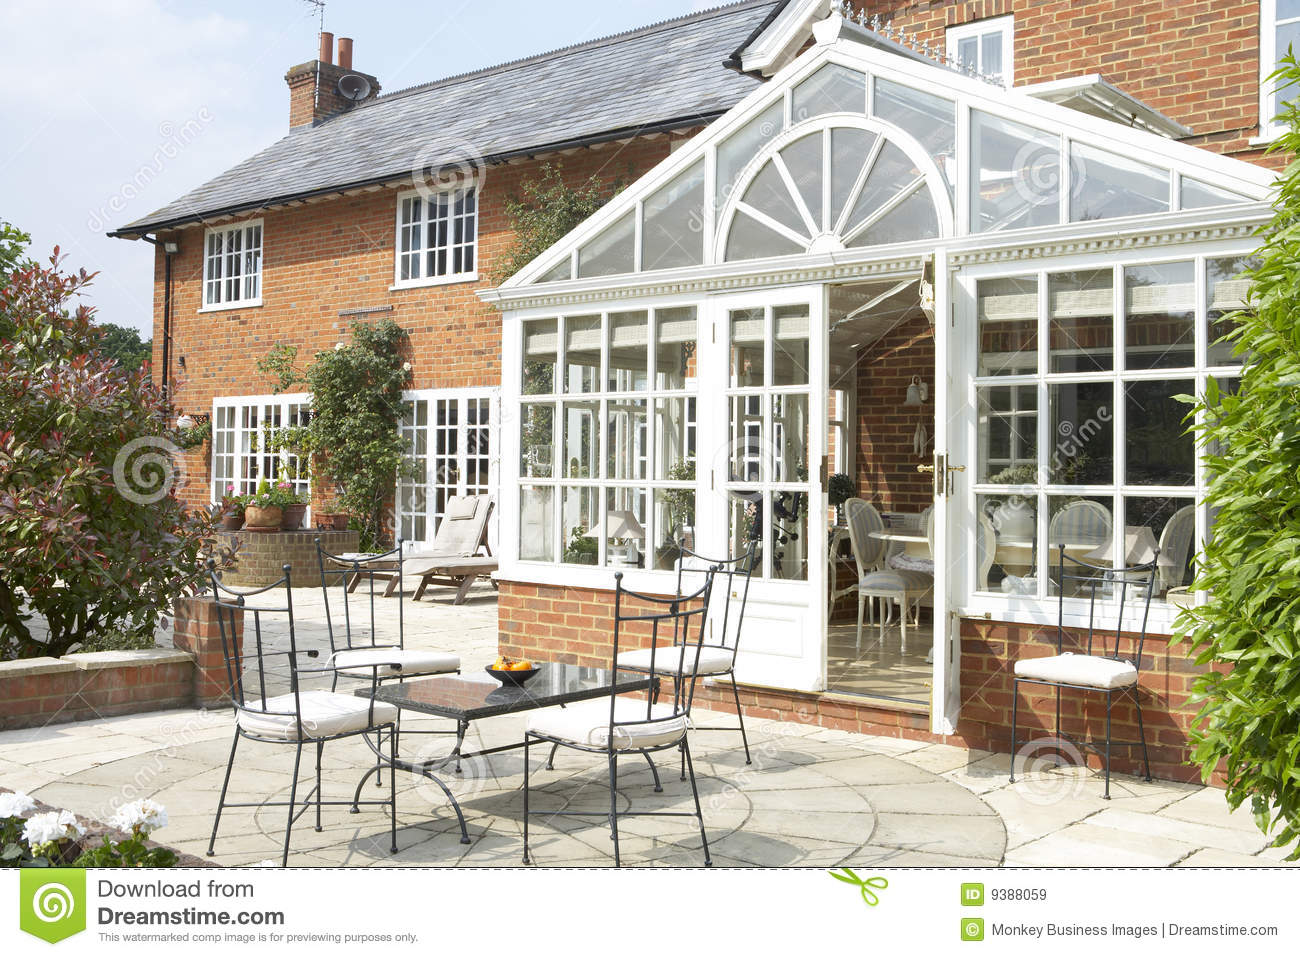 Exterior of house with conservatory and patio stock image for House plans with conservatory